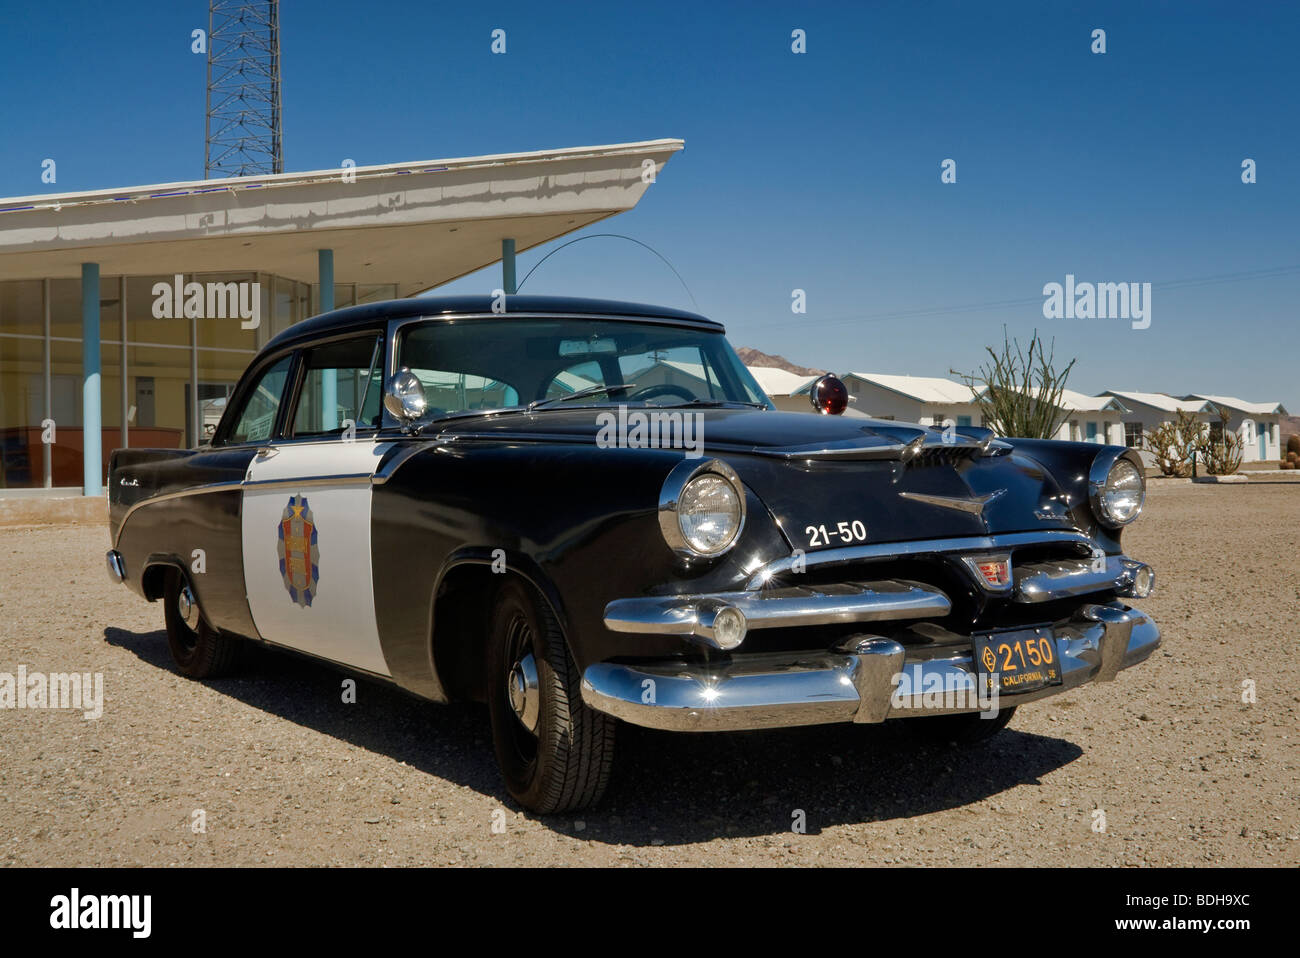 1956 Dodge Coronet police cruiser at Roys Motel and Cafe in Amboy, Mojave Trails National Monument, California, - Stock Image